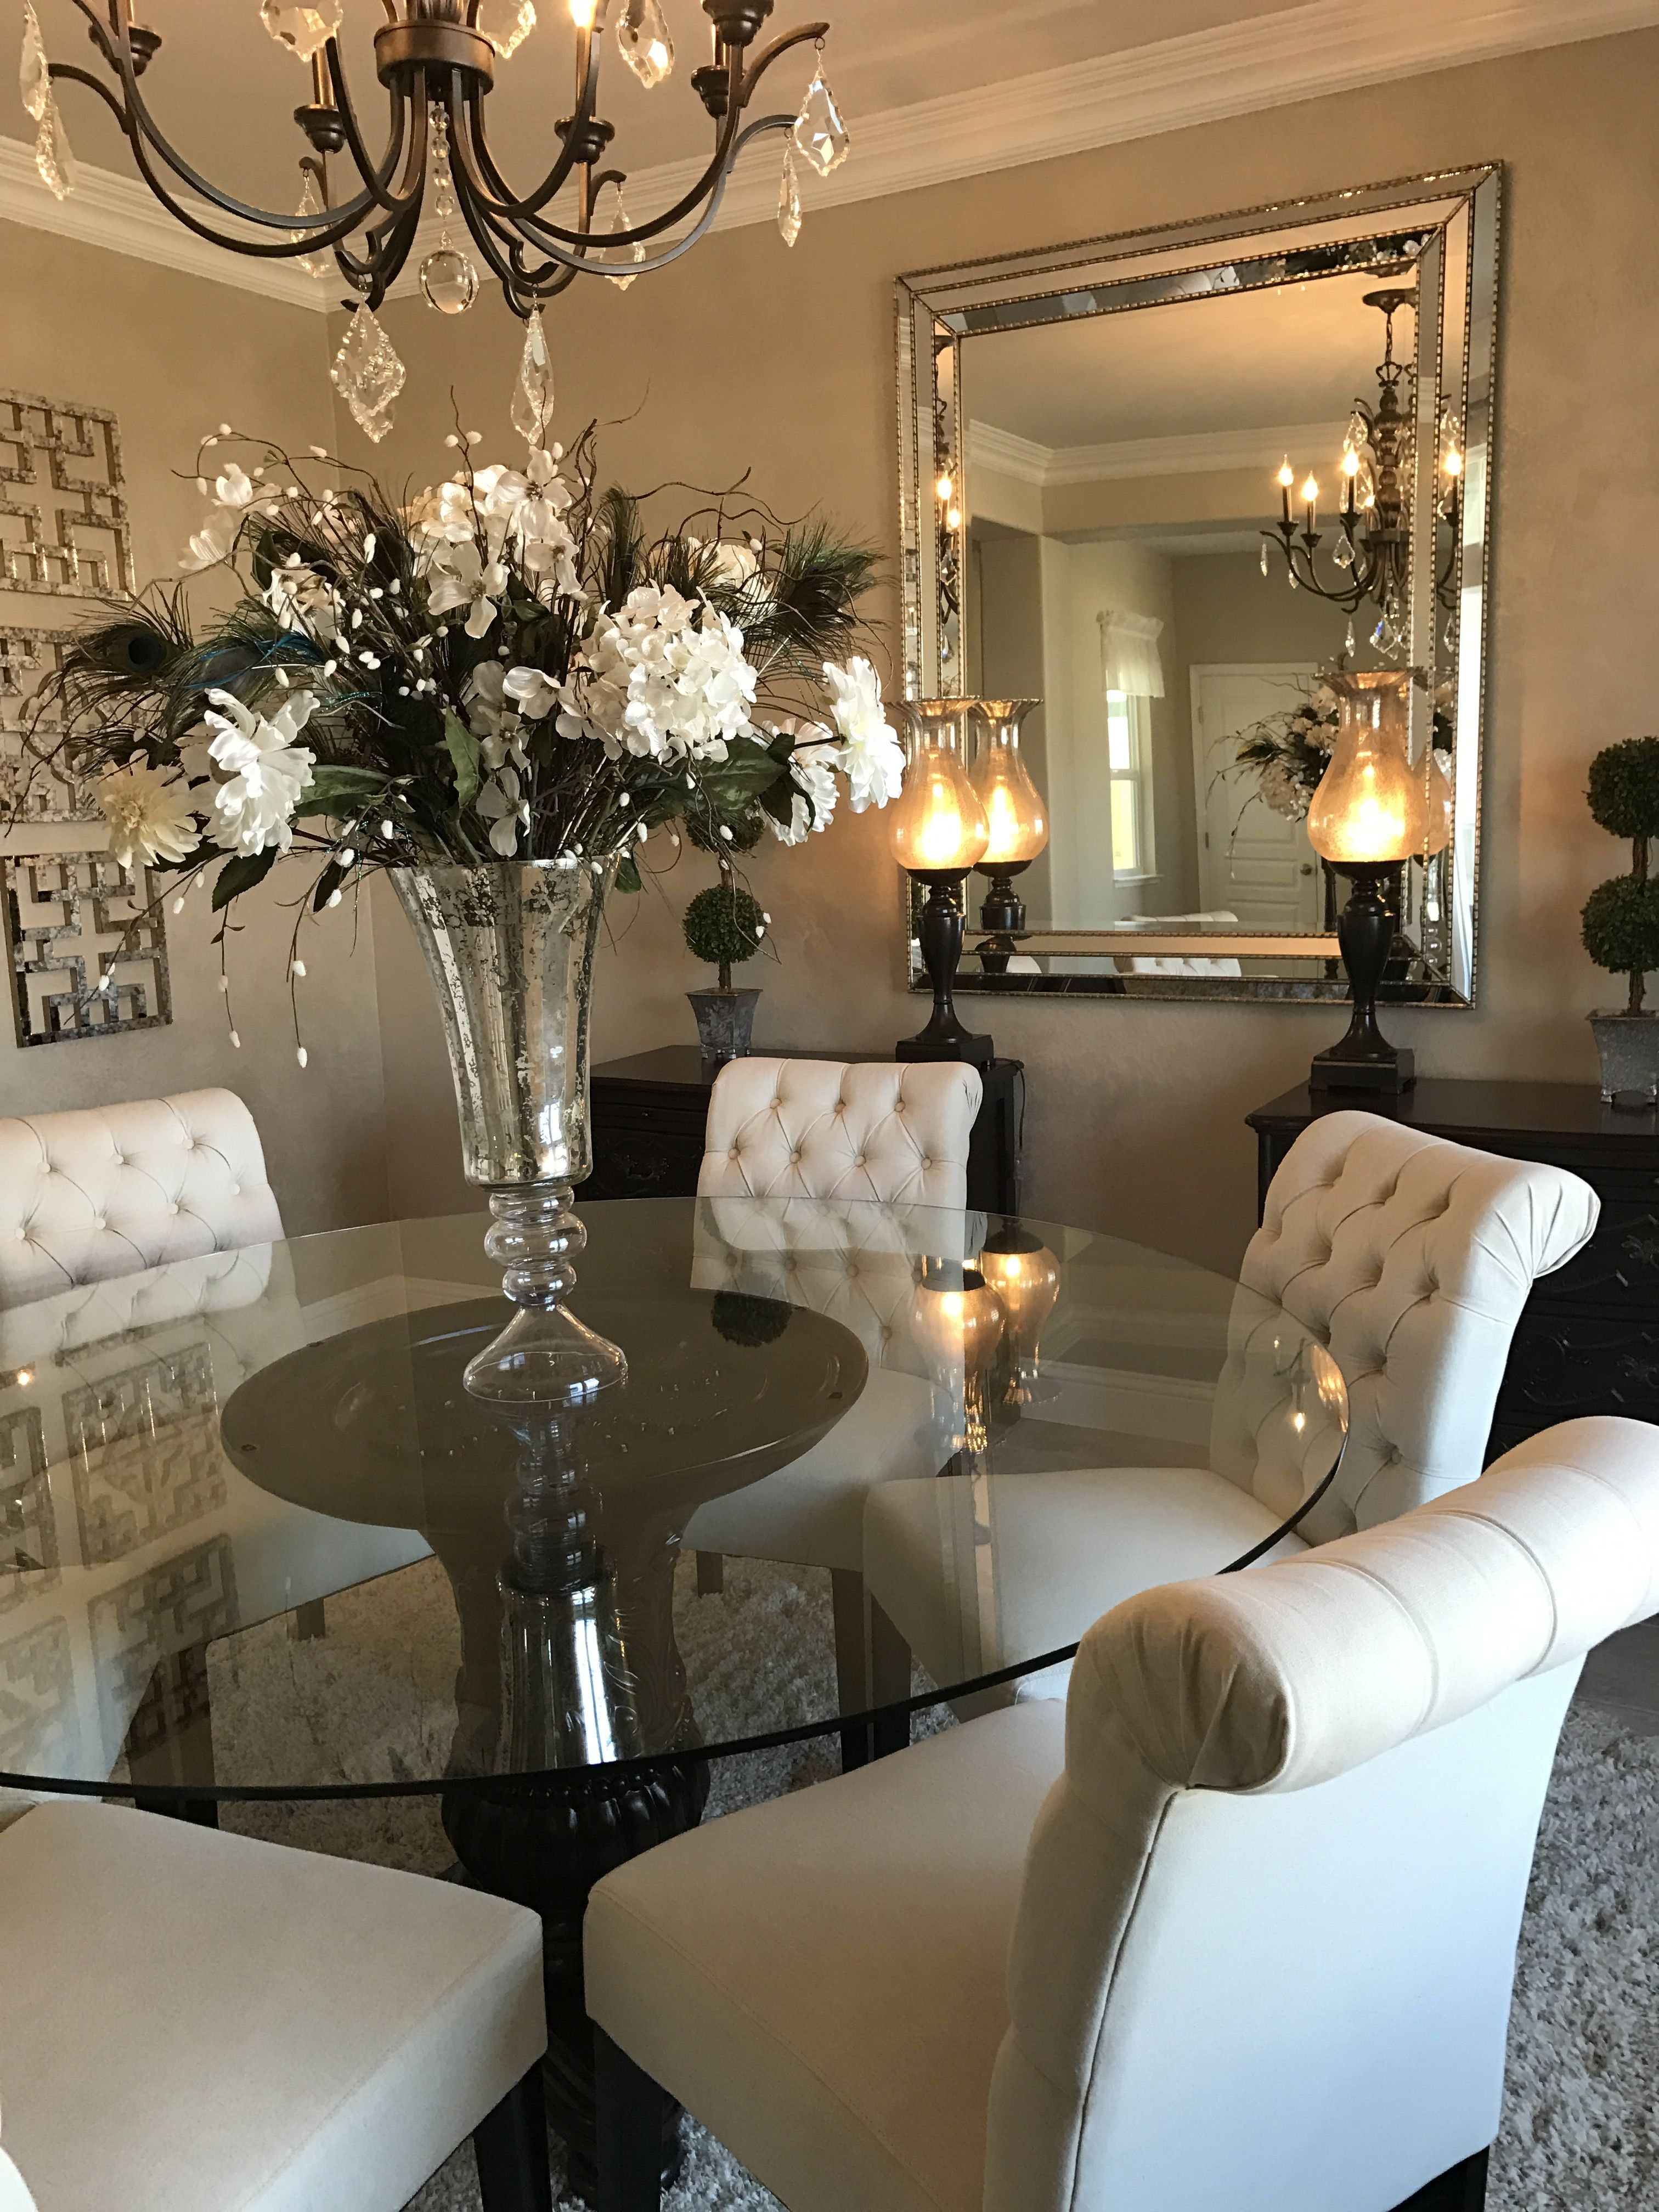 Get inspired similar to dining roomideas and photos for your house refresh or remodel wayfair offers thousands of design ideas every room in all style also follow taiylamai more pins fashion food diy rh pinterest